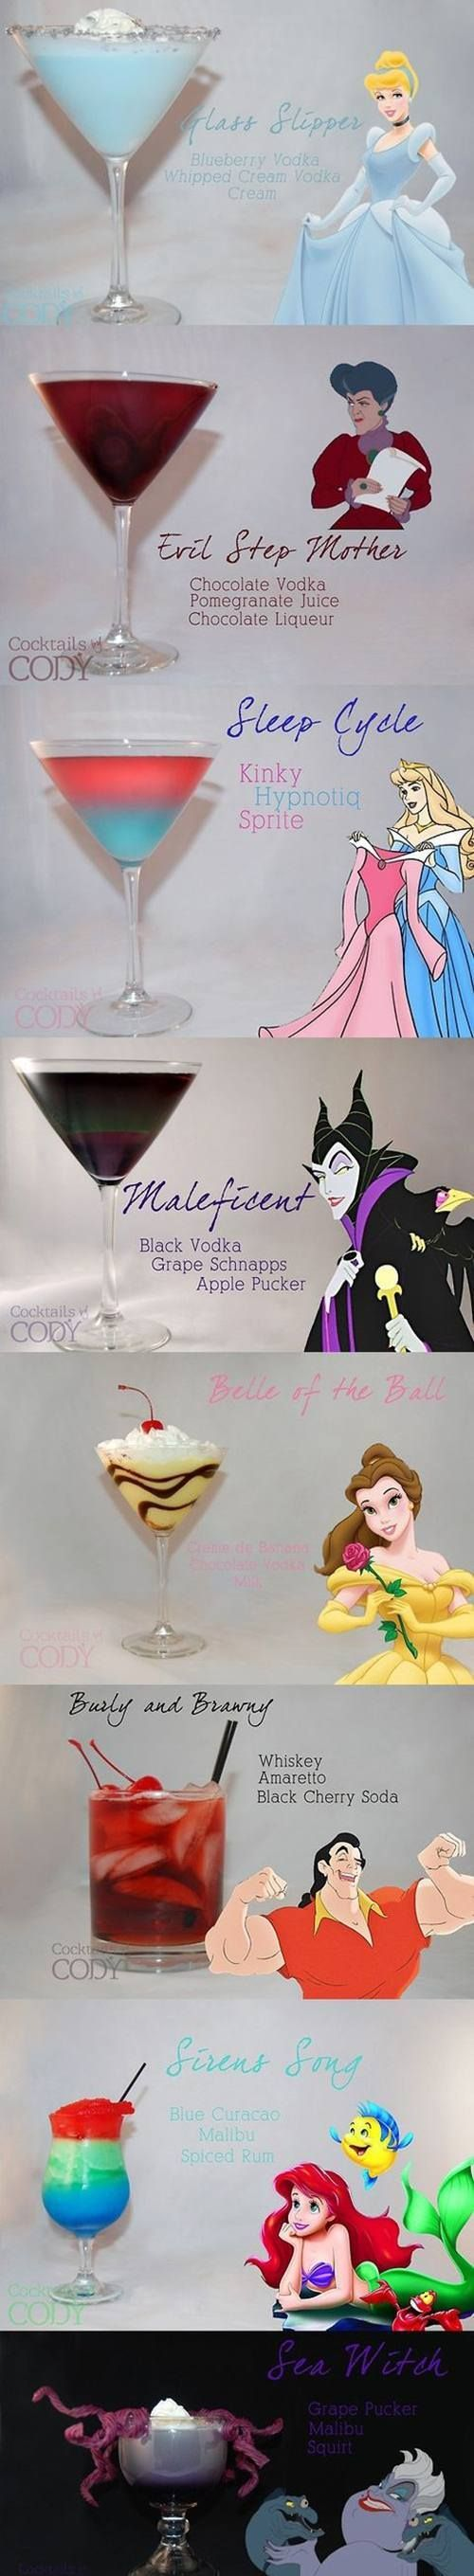 disney wedding cocktails